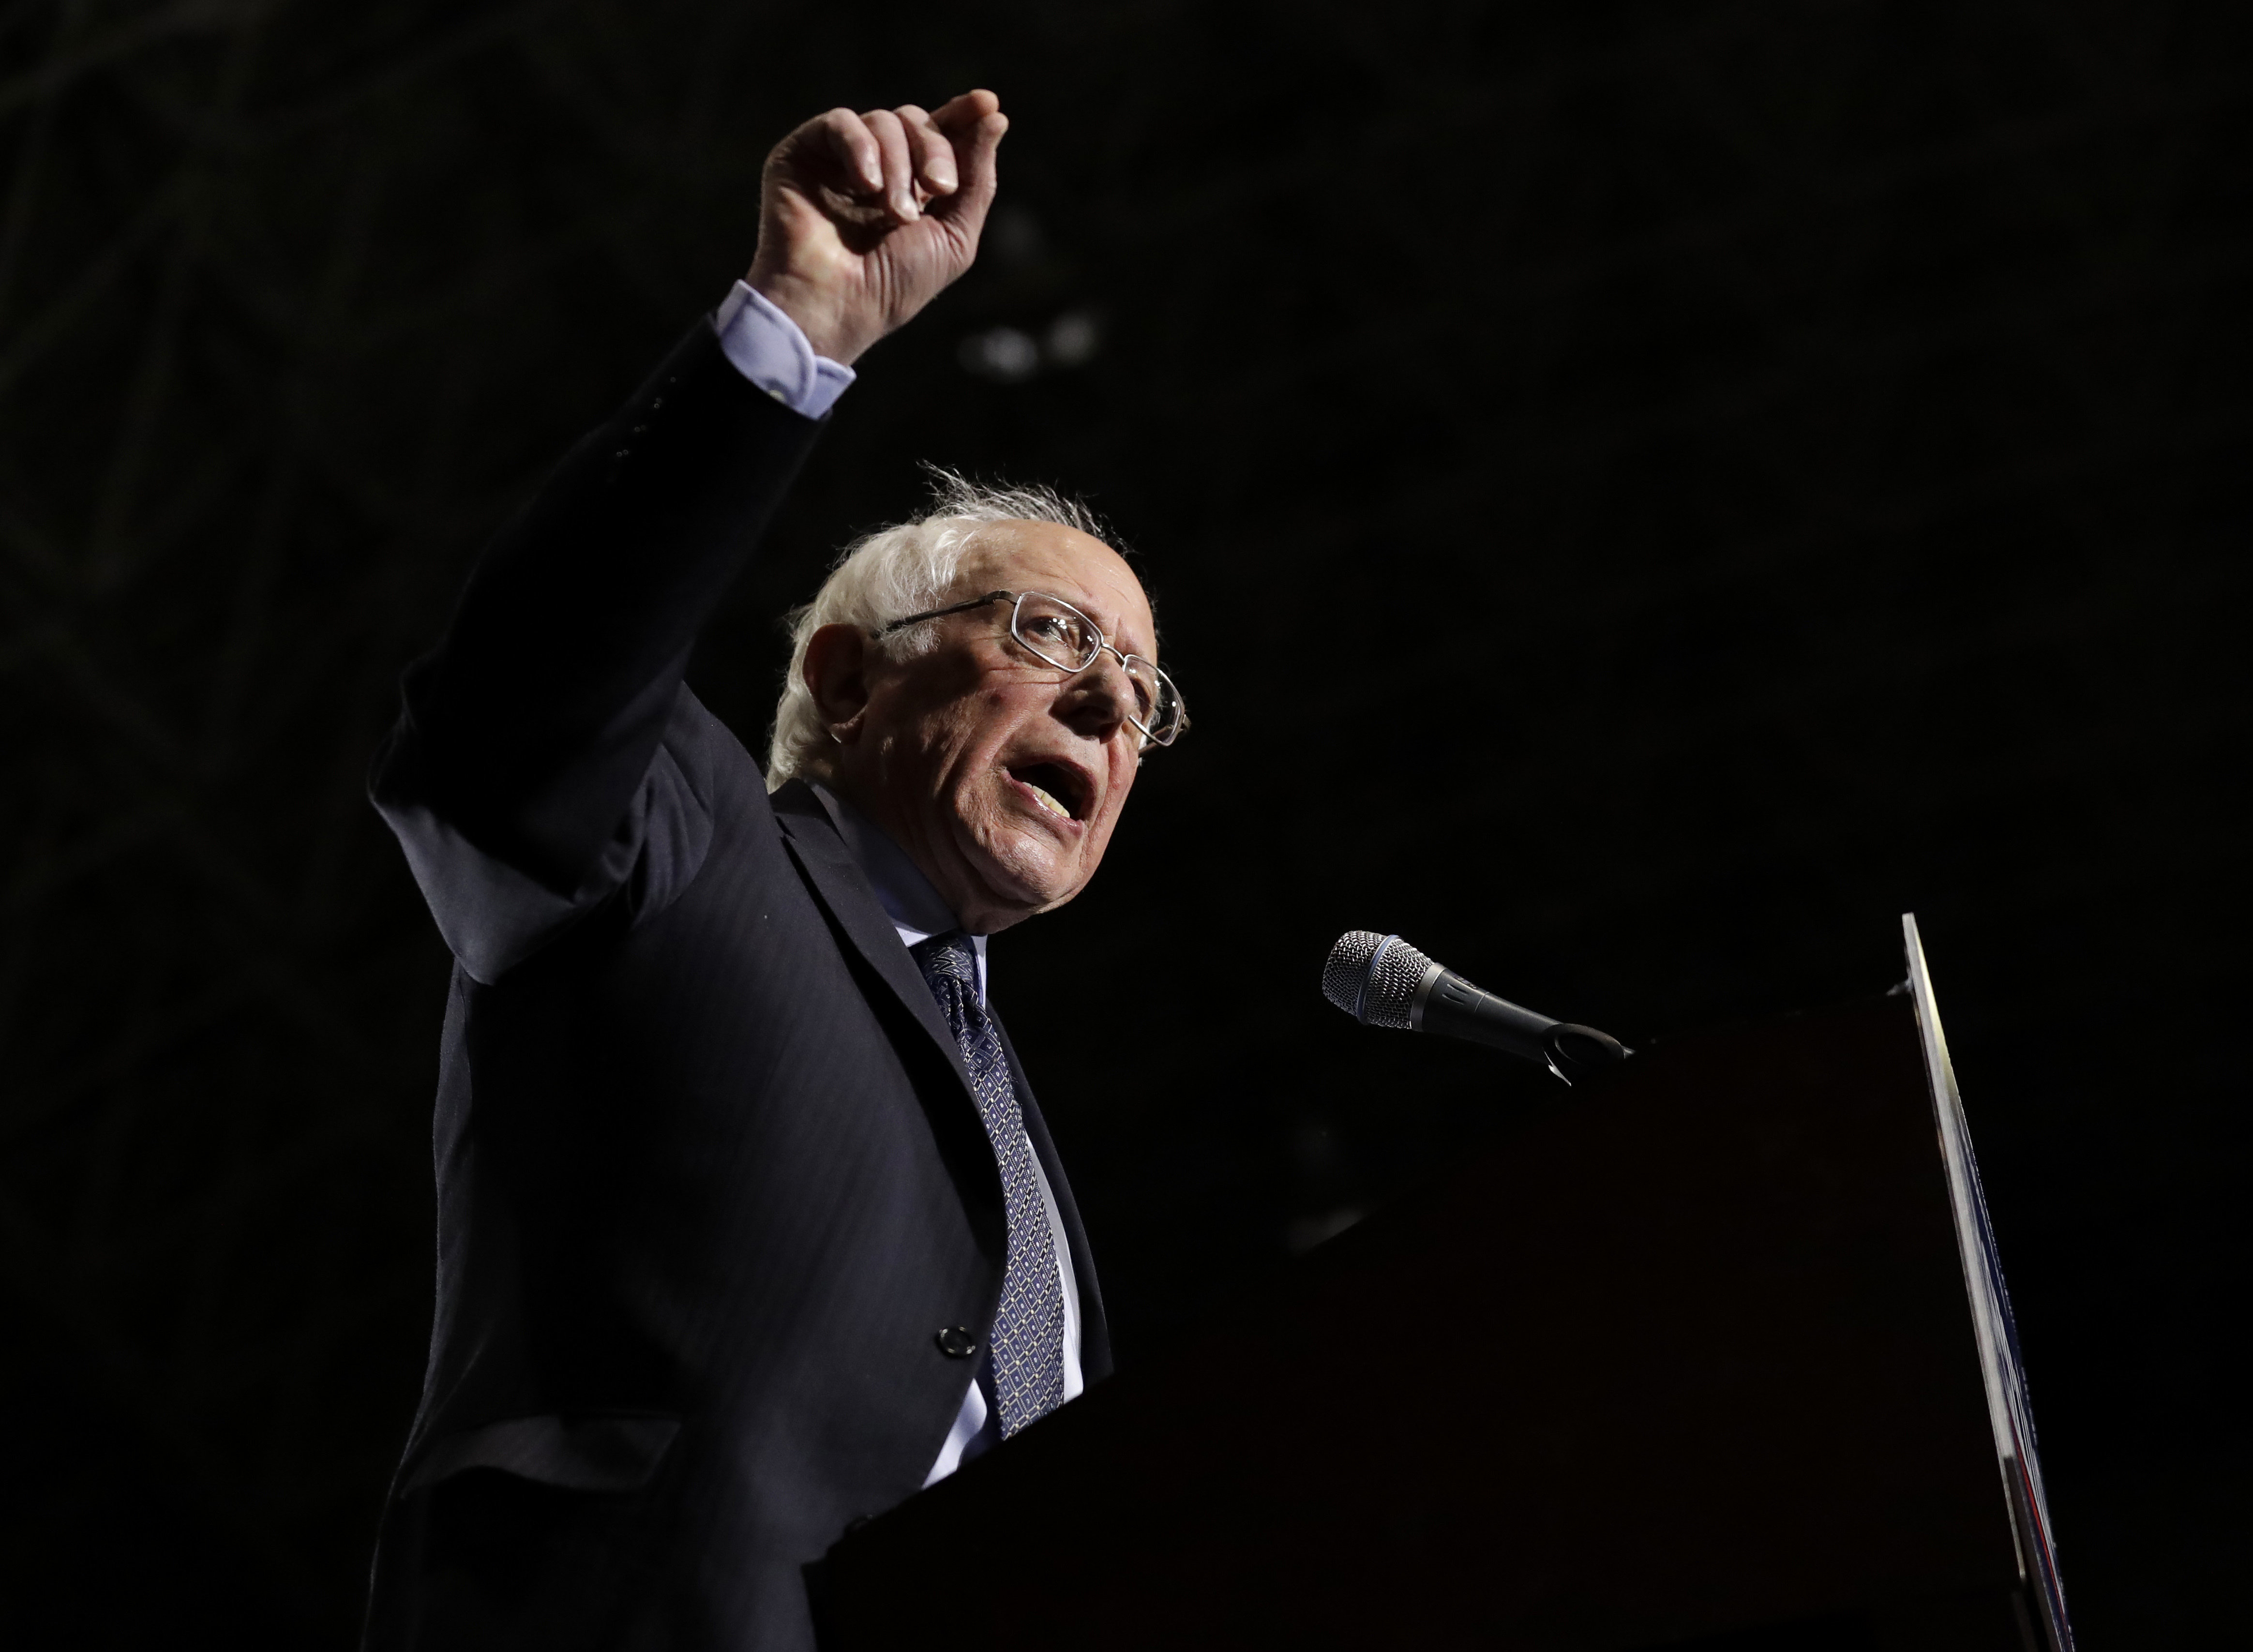 Sen. Bernie Sanders took hiscampaign for the 2020Democratic presidential campaign to Chicago on Sunday,wher